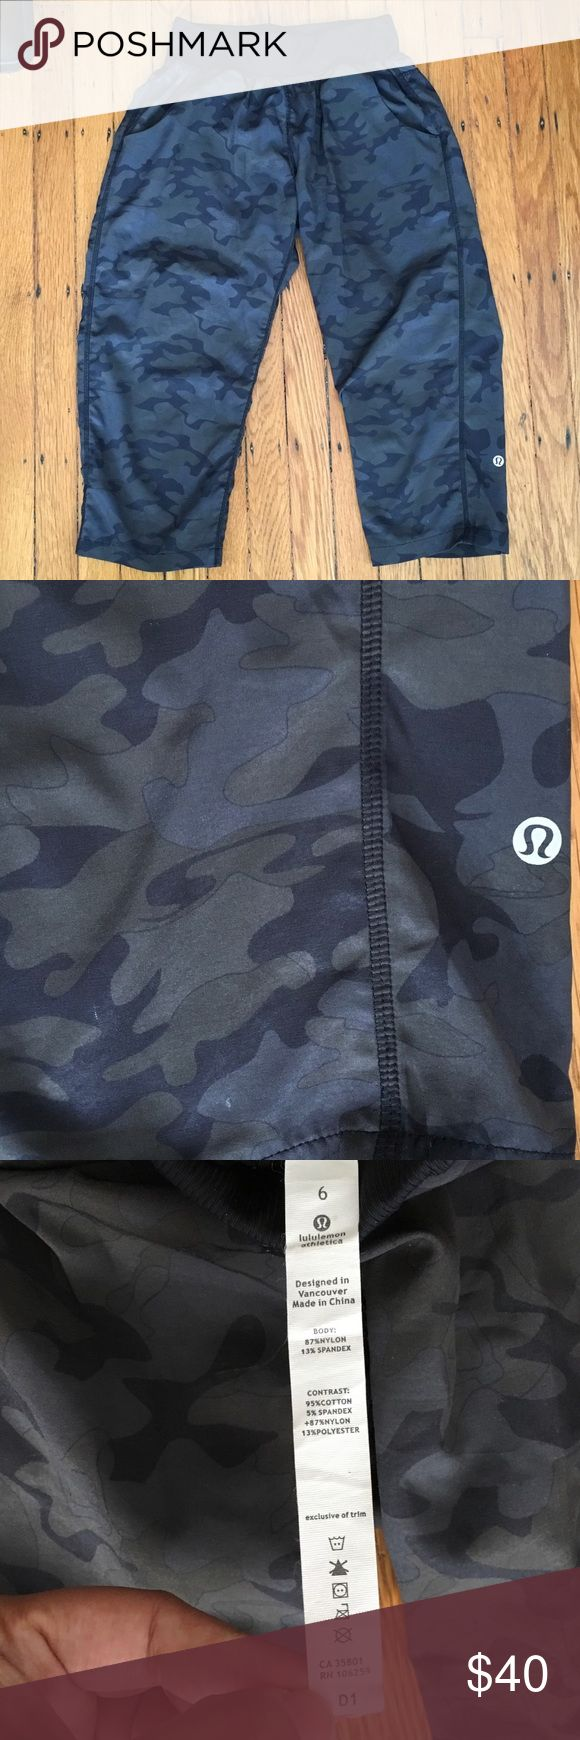 🏃🏼‍♀️ Lululemon Camouflage Crop 6 🏃🏼‍♀️ My daughter wore these pants on a hike while carrying a backpack once so now they have slight piling on the lefthand side.  When wore you can't really see it but when they are off you can see it.  I've never tried to take it off but I'm sure you could.  They are camouflage and have a black waistband and are lined with soft mesh to give you a better performance.  Size 6 and come from a smoke free pet free home. lululemon athletica Pants Ankle…